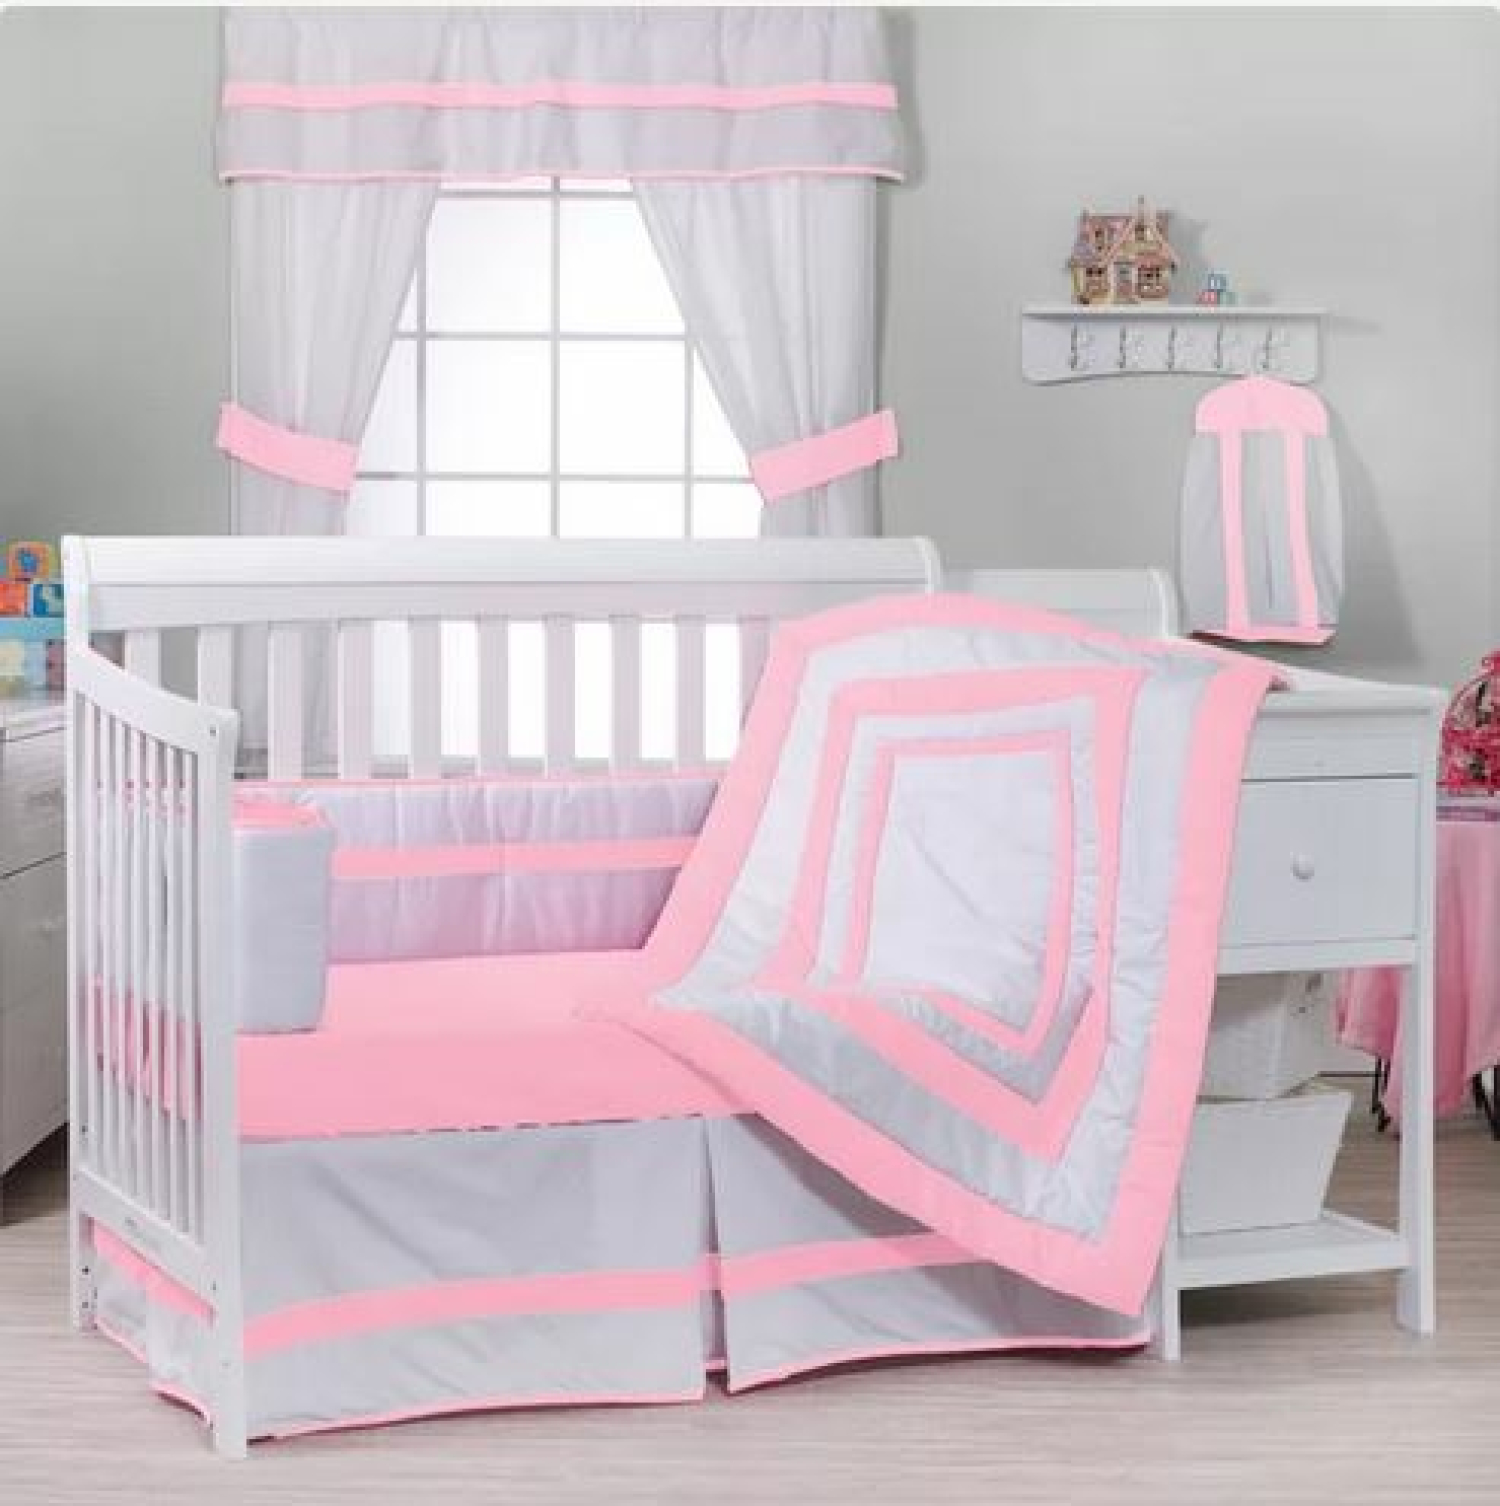 Pink White 4 Pc Crib Bedding Set With Sheet Bumper Dust